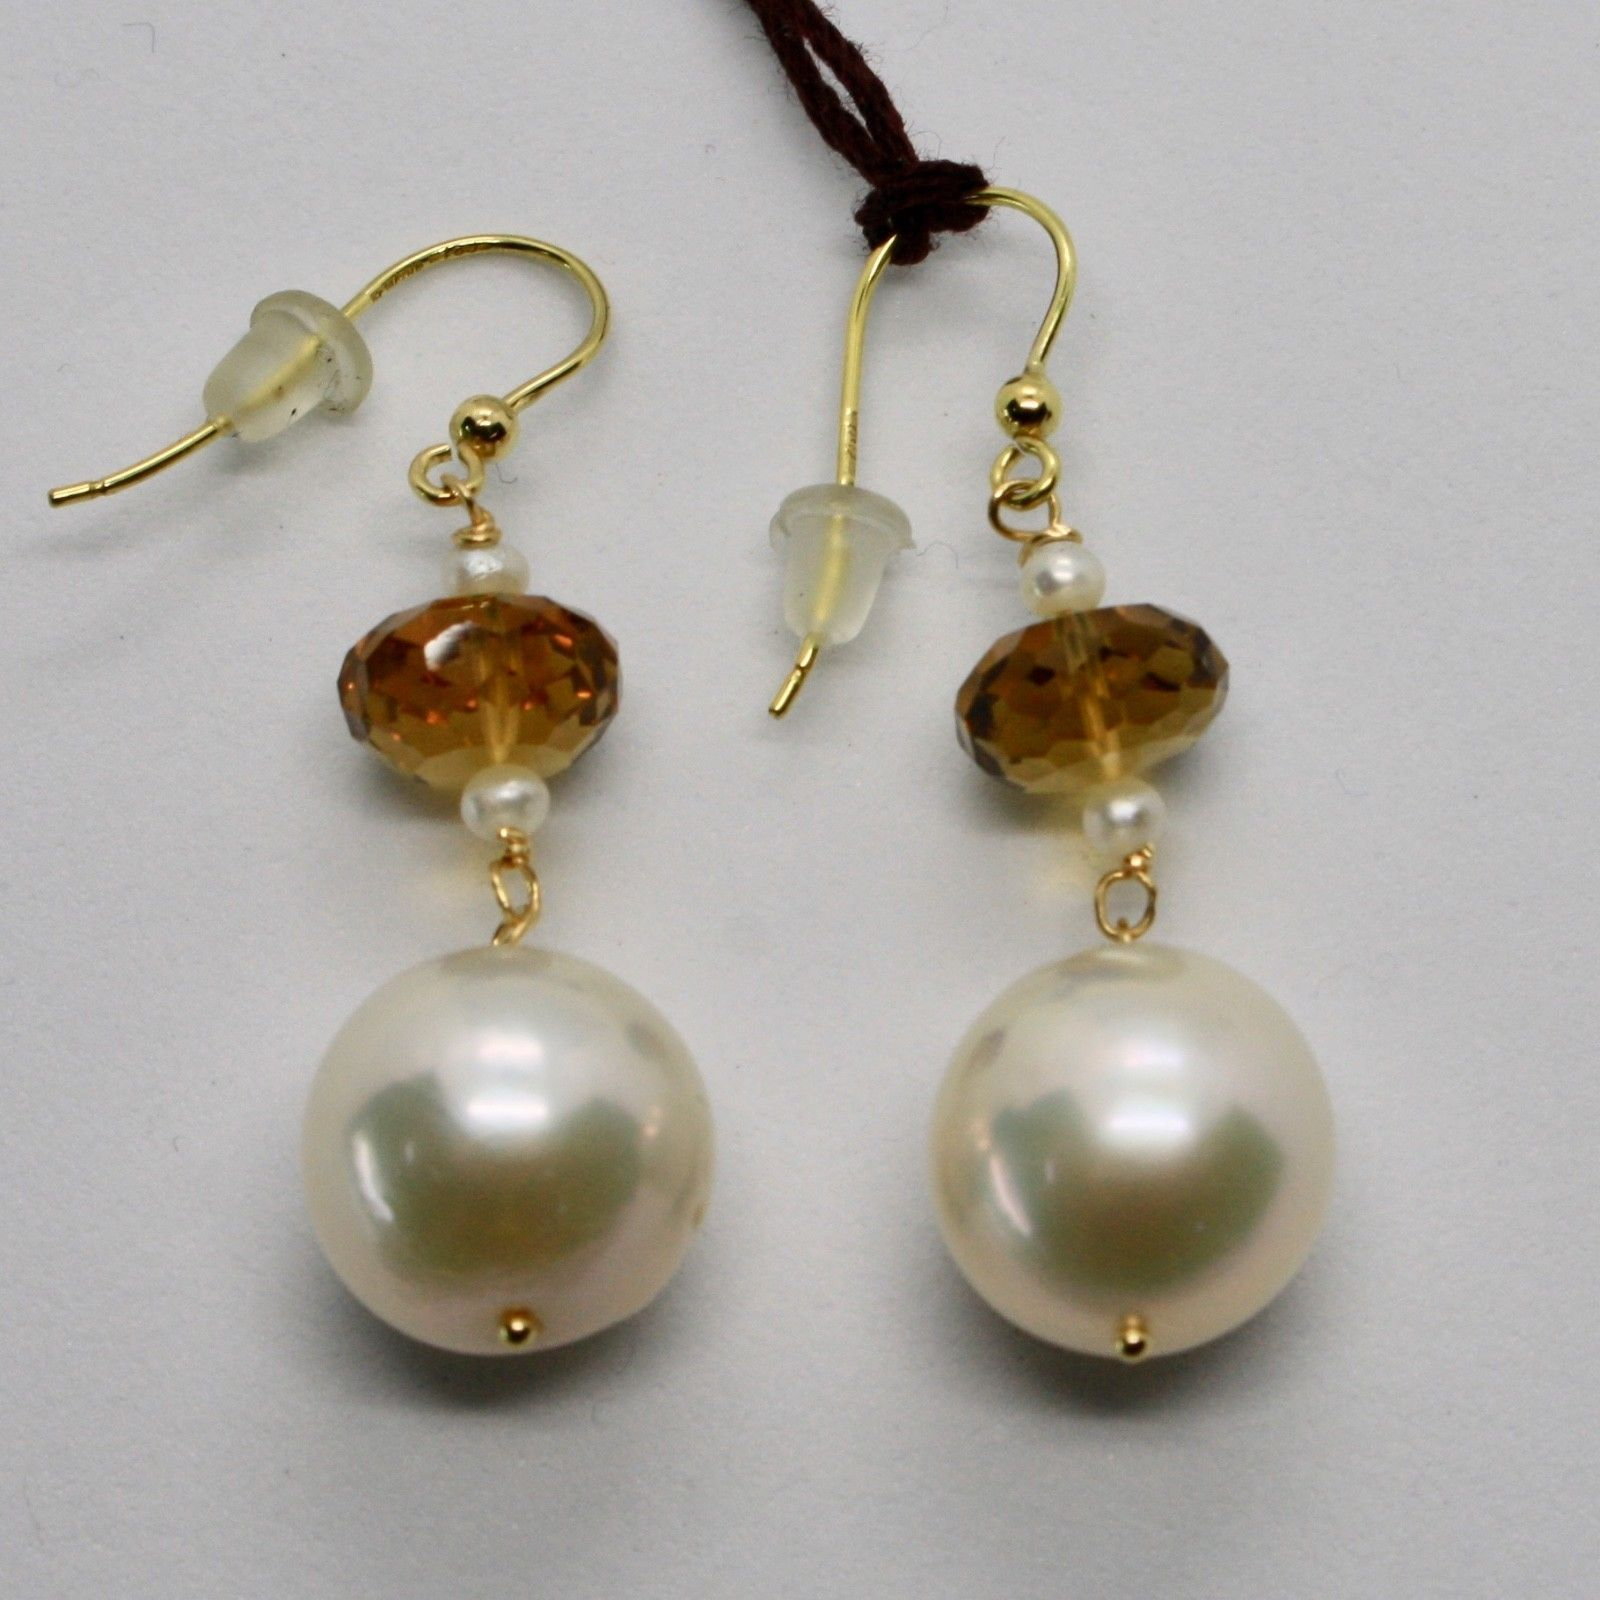 YELLOW GOLD EARRINGS 18KT 750 PEARLS FRESH WATER AND QUARTZ BEER MADE IN ITALY